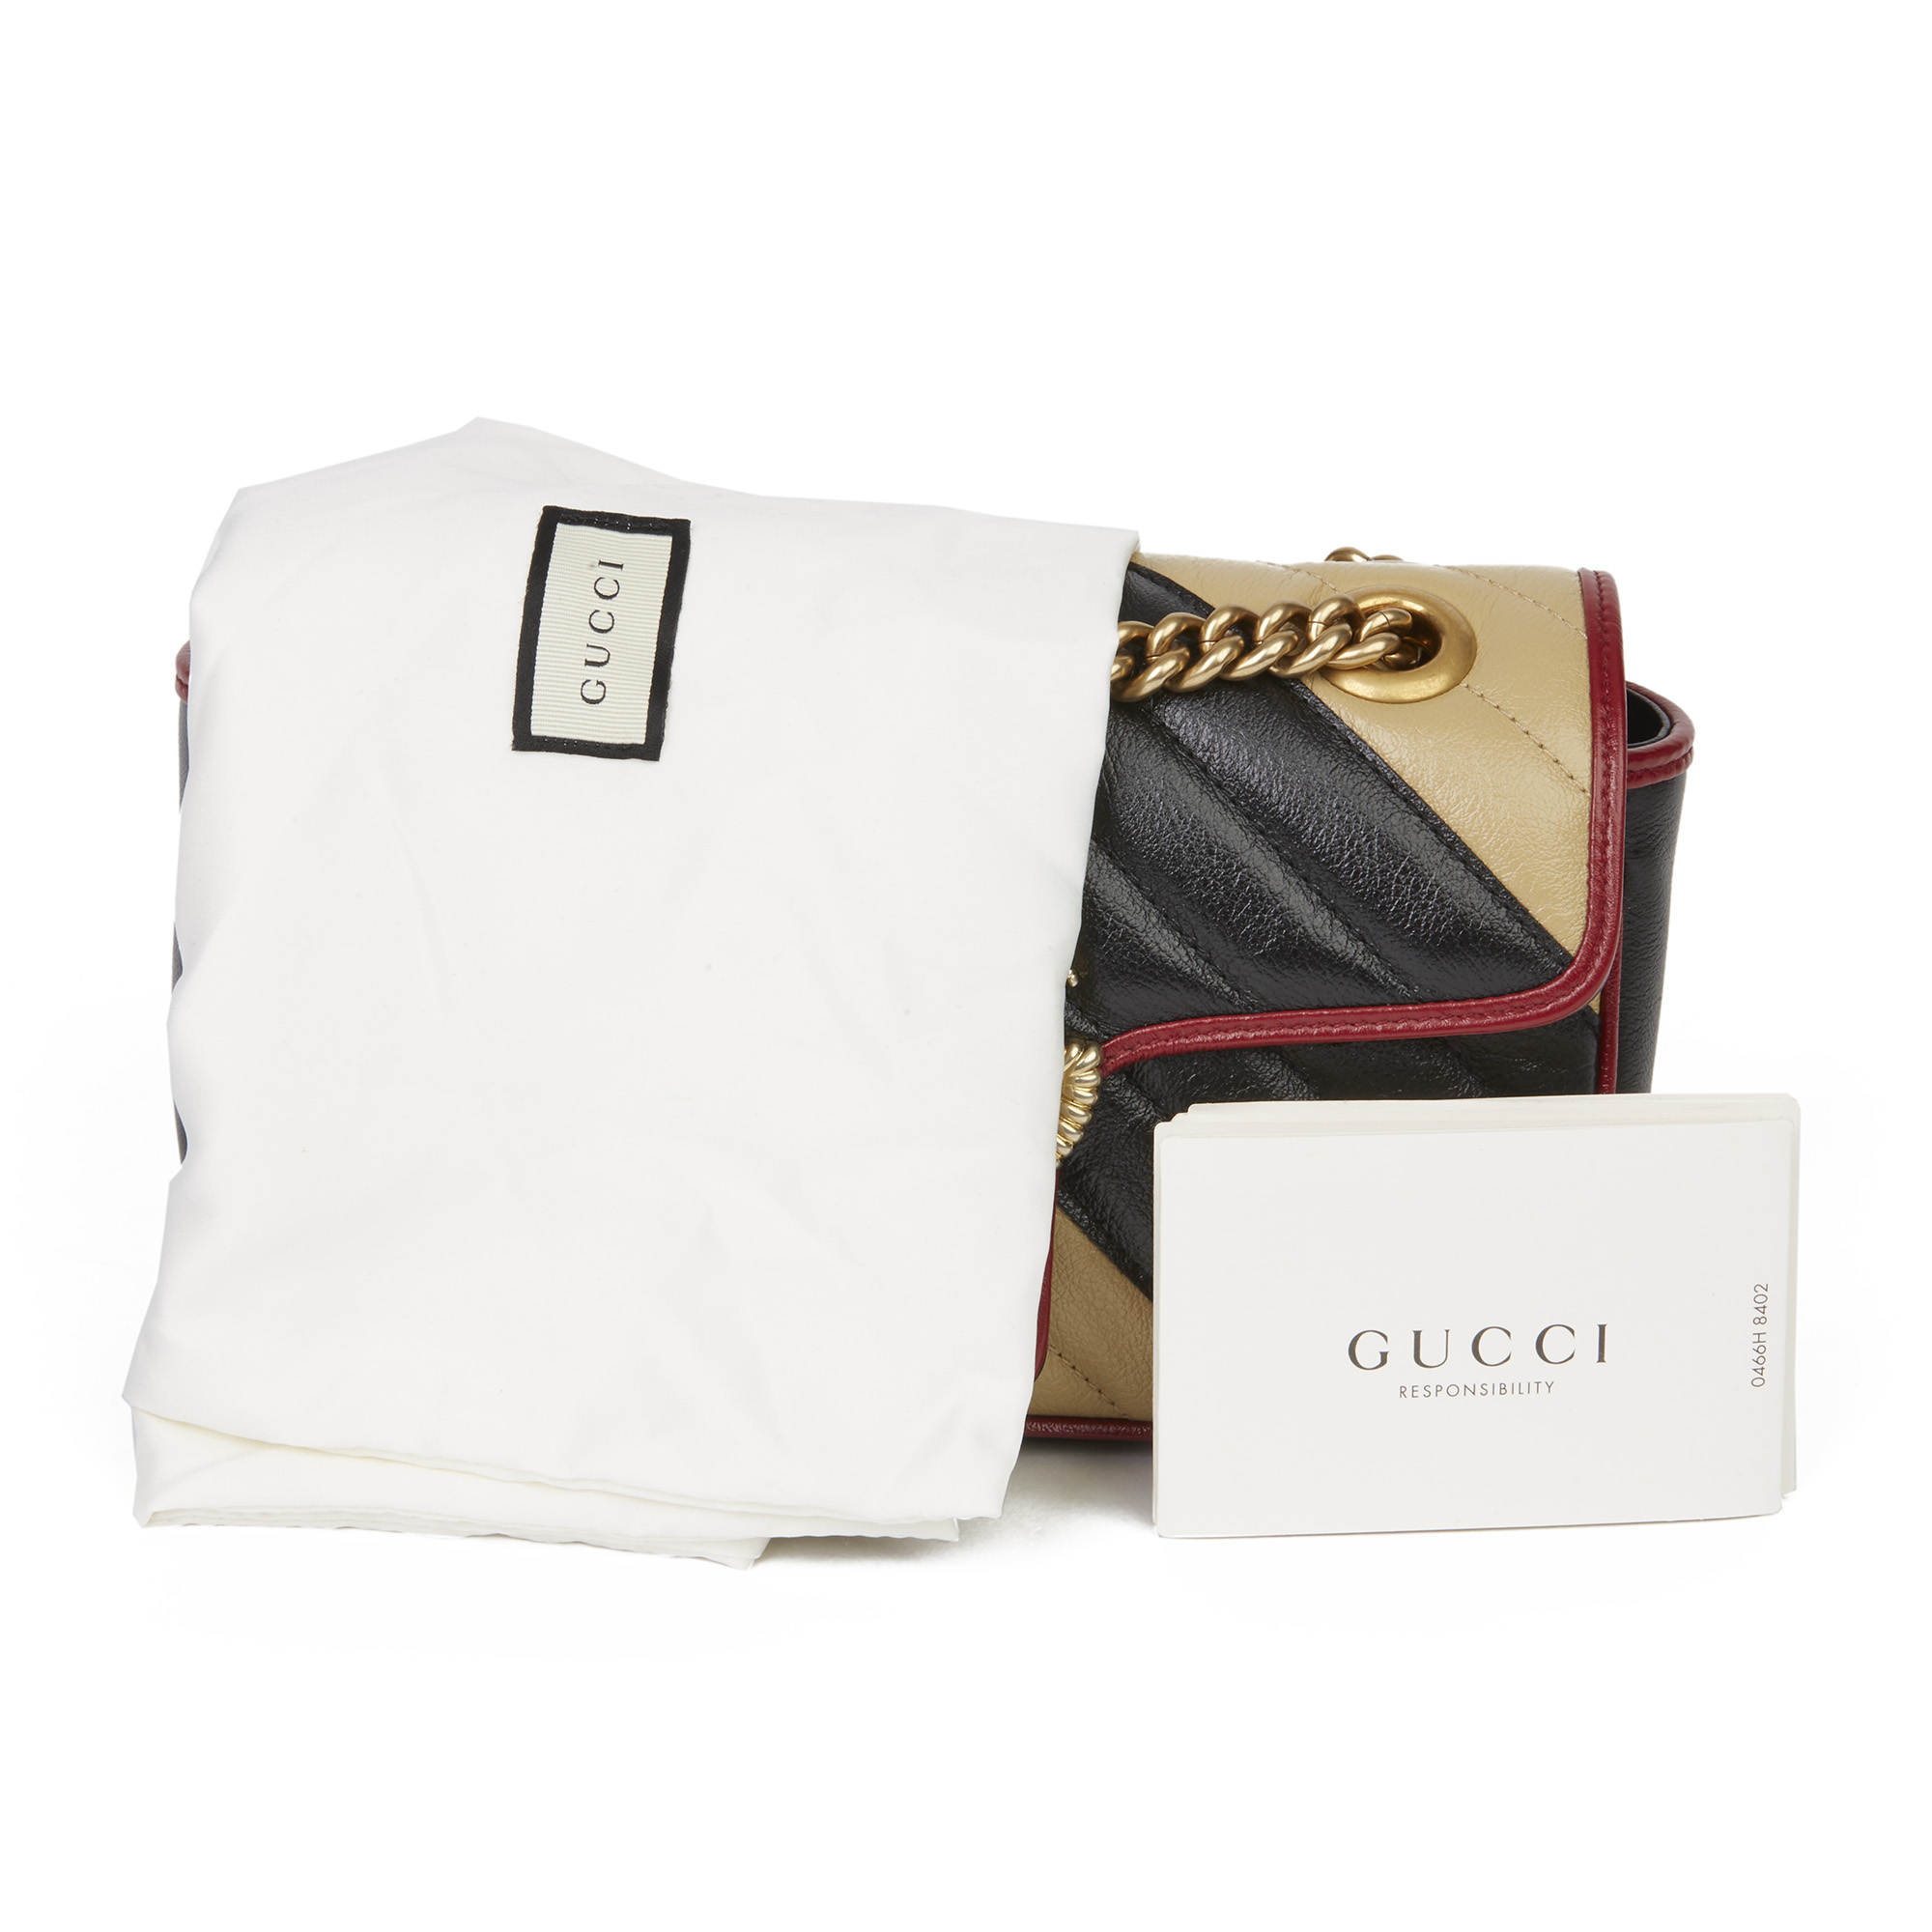 Gucci Black, Cream & Red Diagonal Quilted Aged Calfskin Leather Mini Marmont - Image 3 of 12